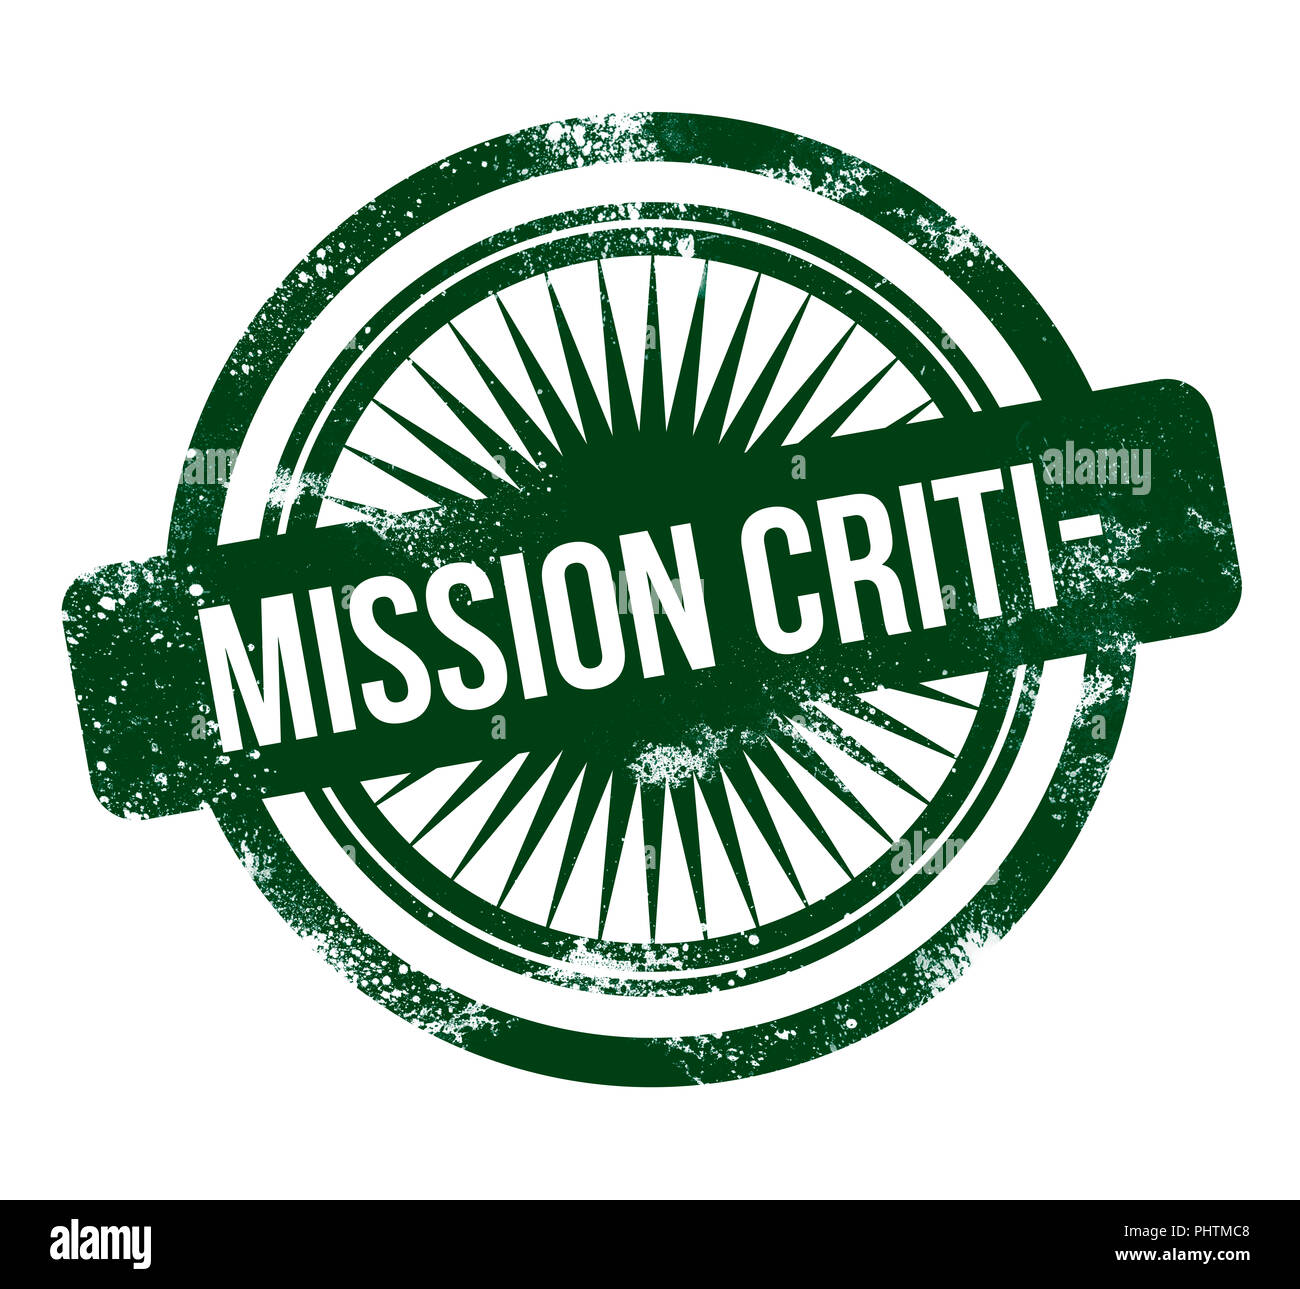 Mission Critical - green grunge stamp - Stock Image